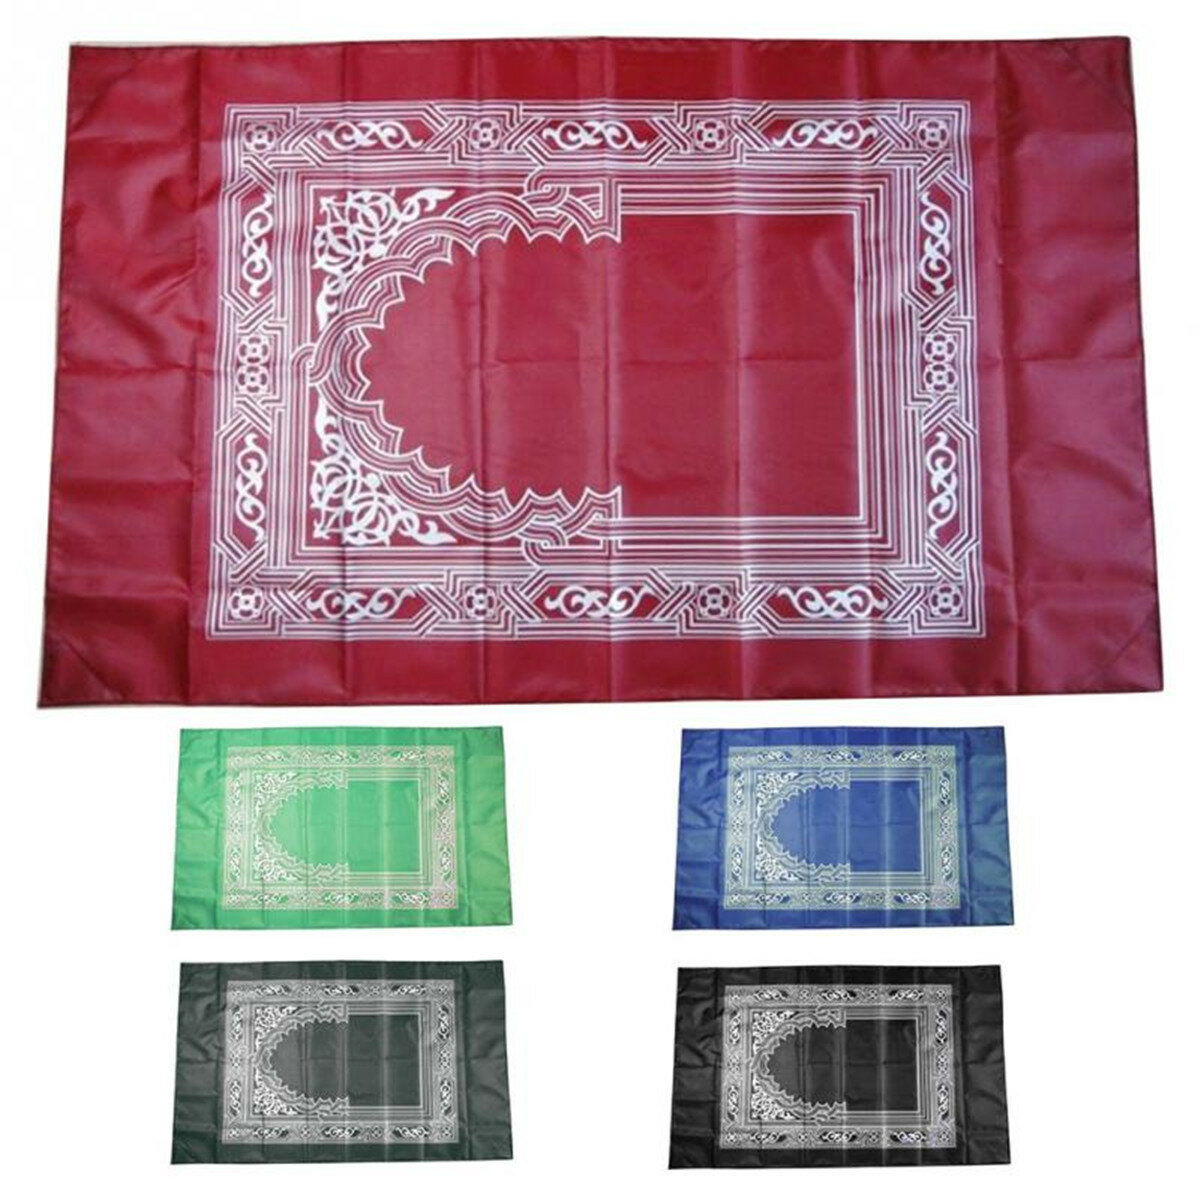 Portable Islamic Prayer Rug Teppich Easy Praying Blankets W Pocket Ramadan Islamic Decoration Gifts